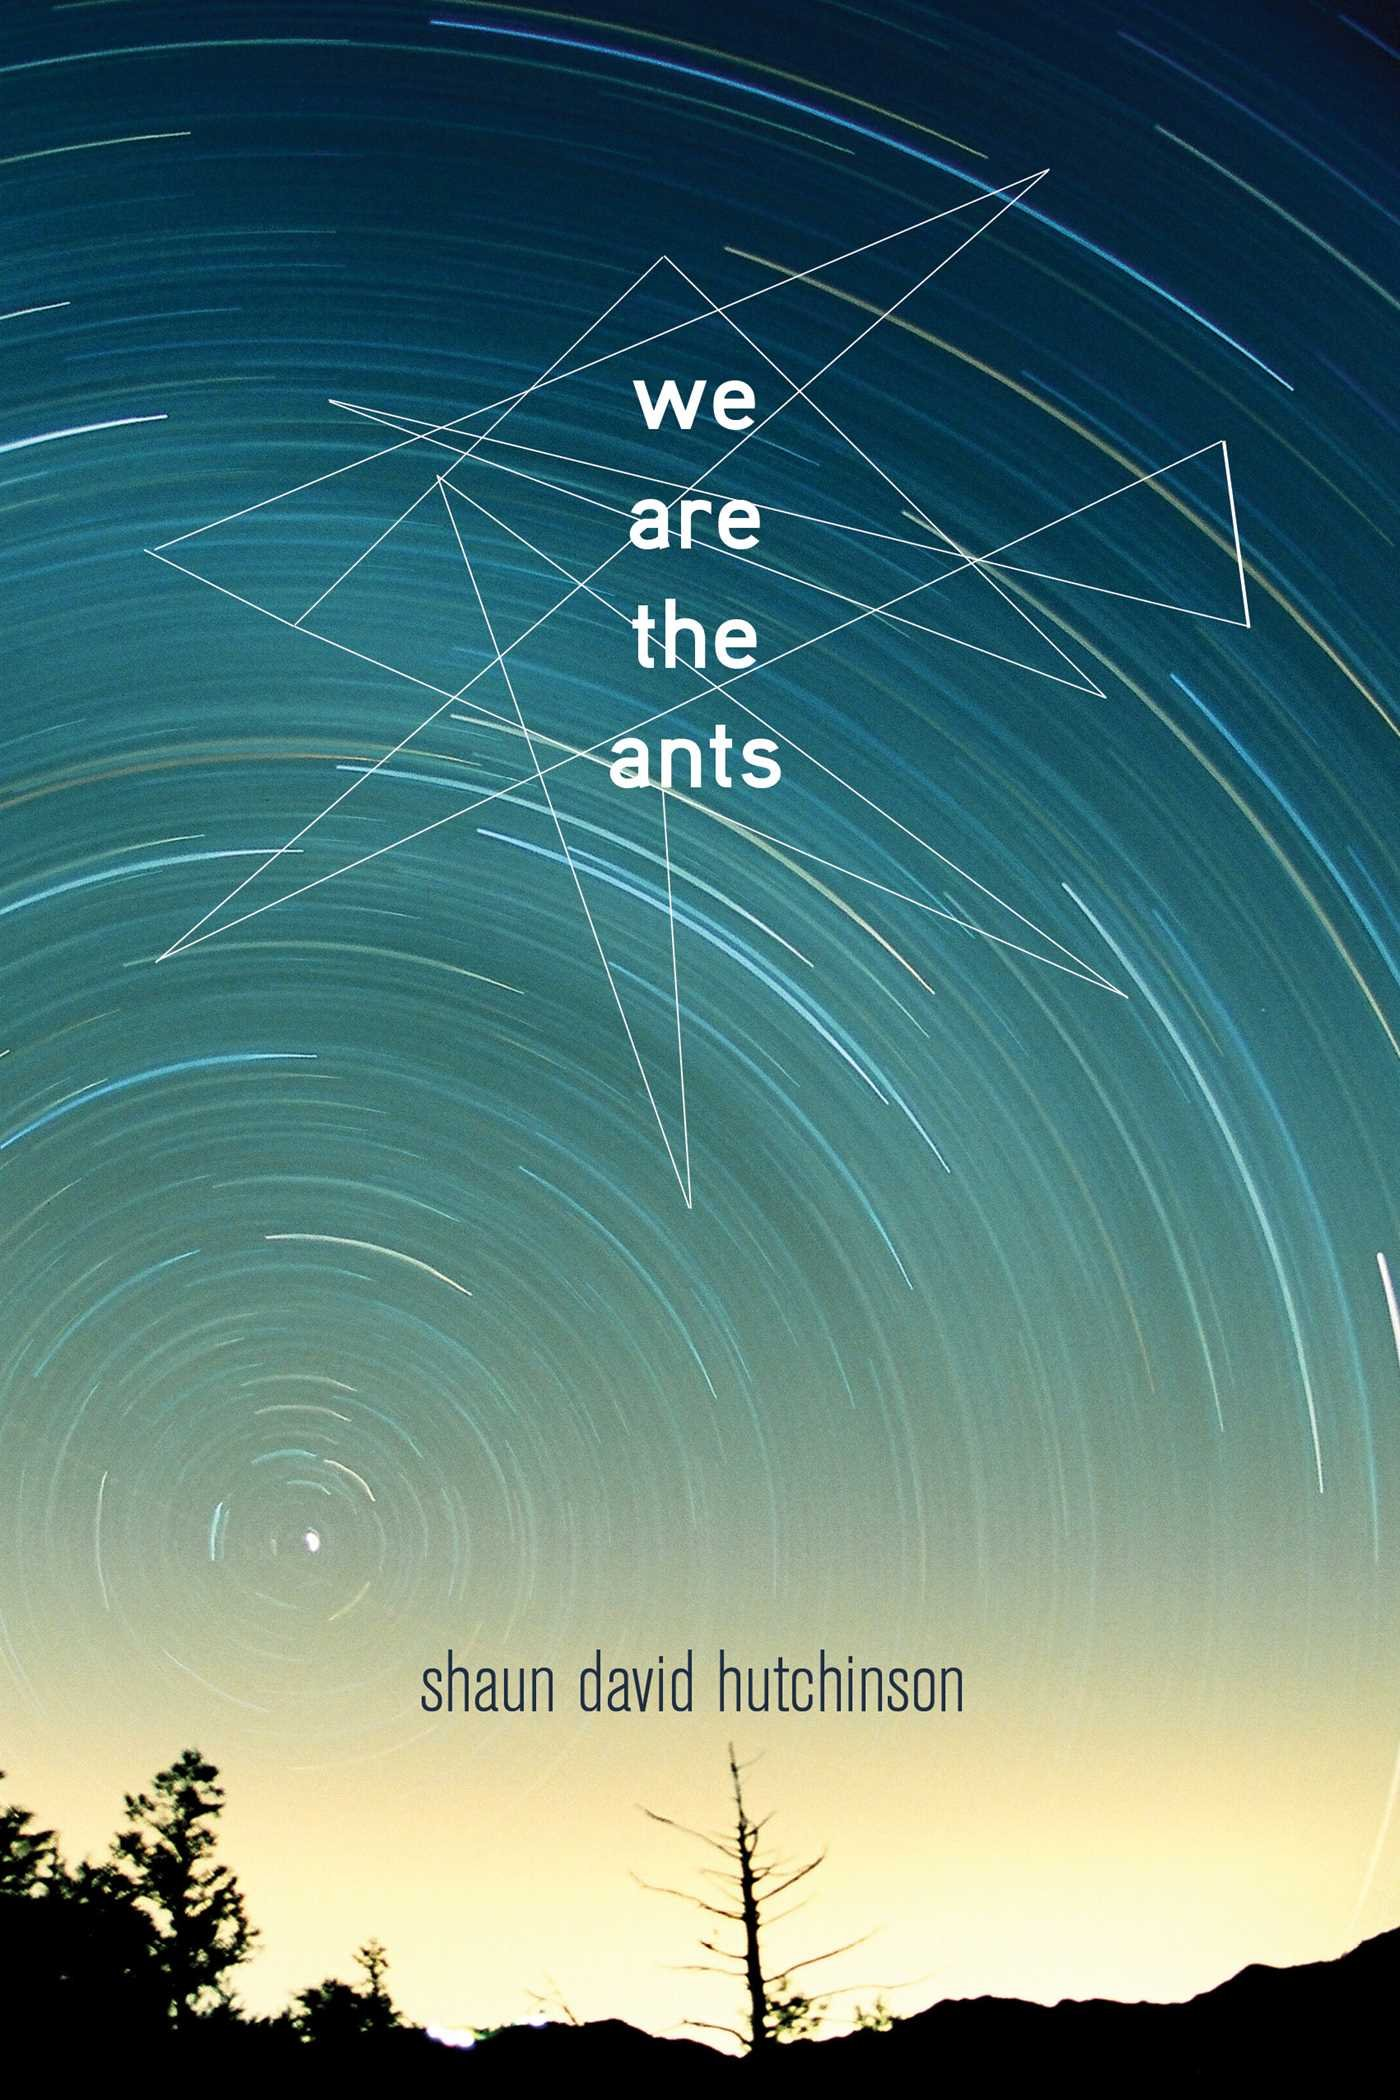 Amazon.com: We Are the Ants (9781481449649): Hutchinson, Shaun ...